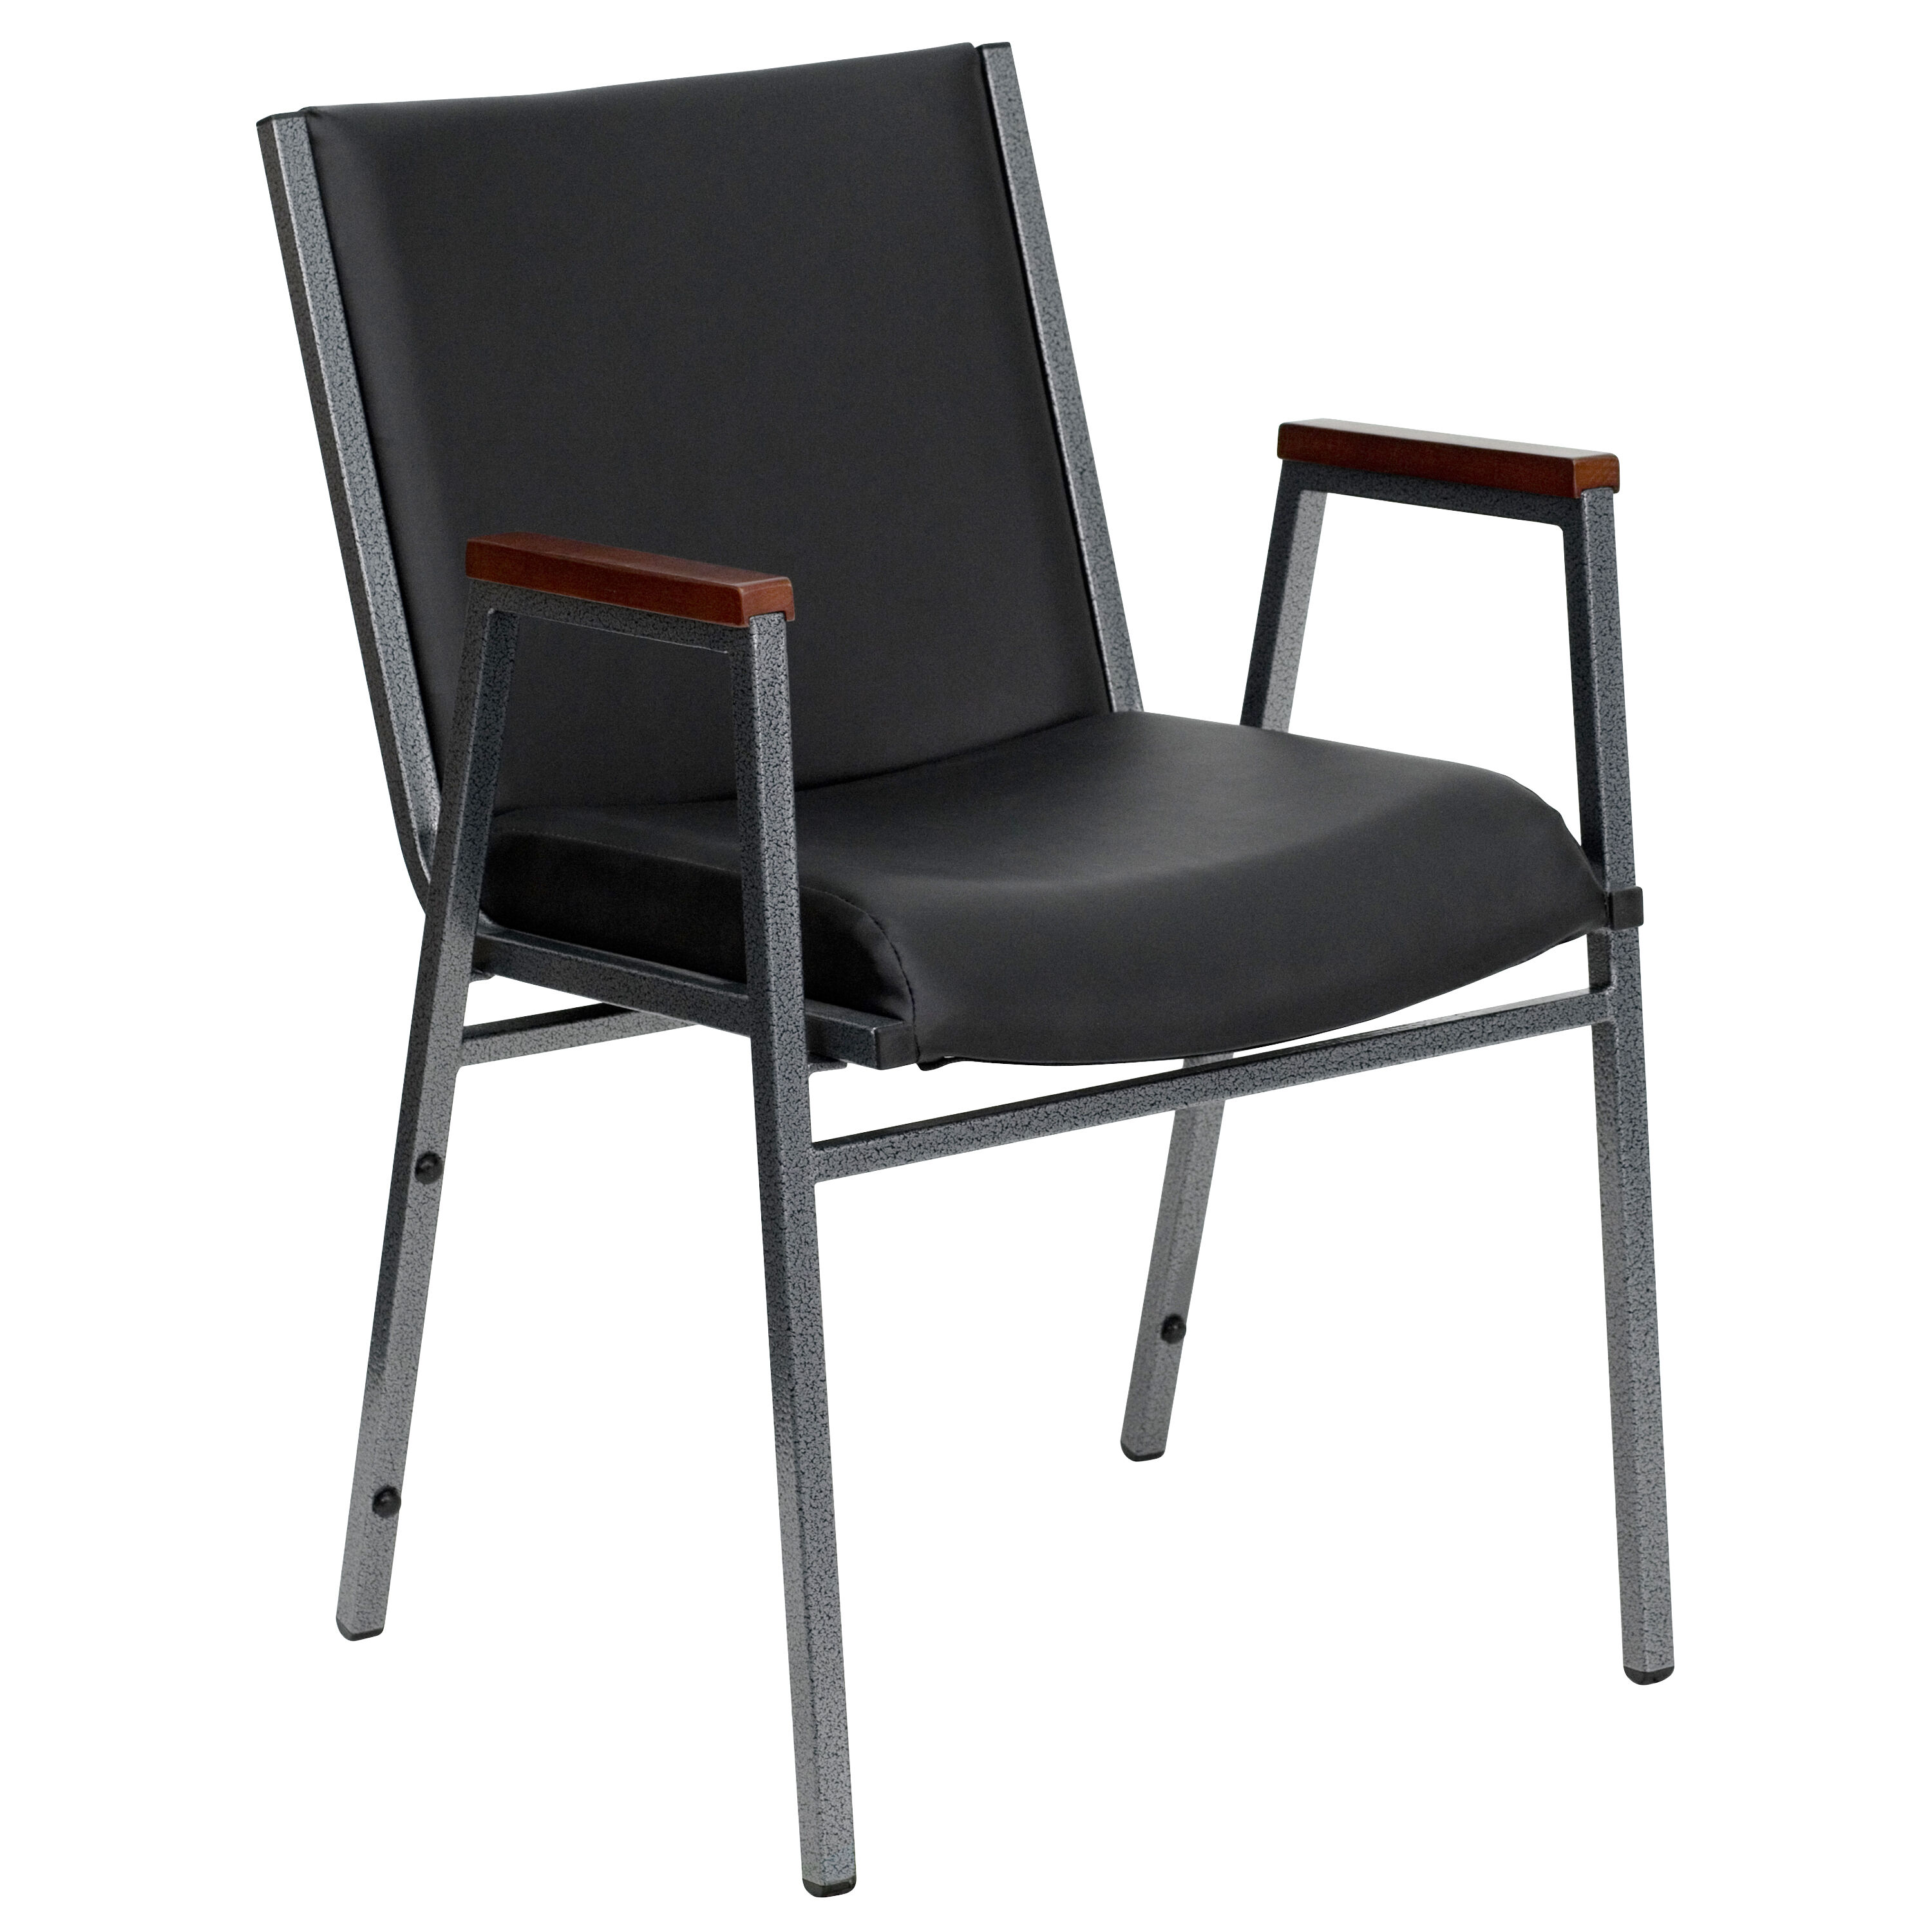 ... Our HERCULES Series Heavy Duty Black Vinyl Stack Chair With Arms Is On  Sale Now.